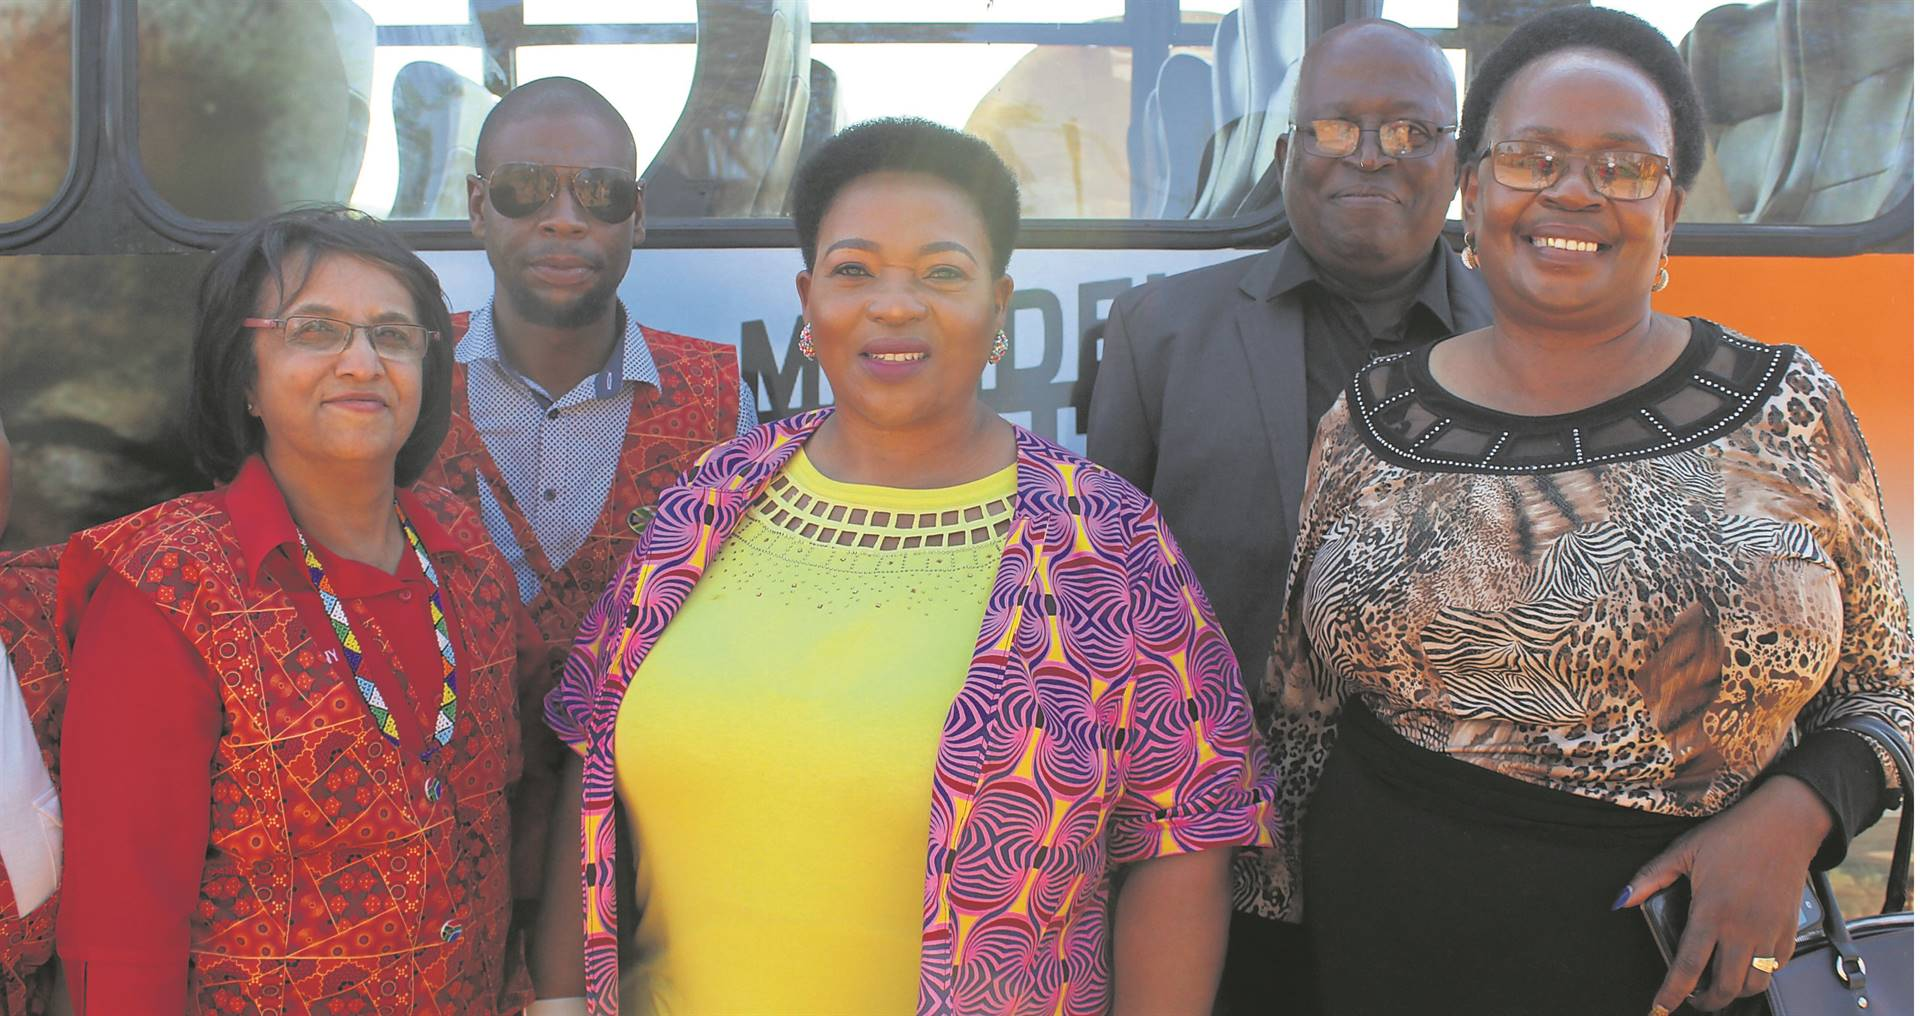 KZN Freedom Route Tour Bus representatives (left) and Economic Development, Tourism and Environmental Affairs MEC Nomusa Dube-Ncube (middle) with locals at the event at the Mandela Capture Site.PHOTOS: NTANDOYENKOSI DLAMINI